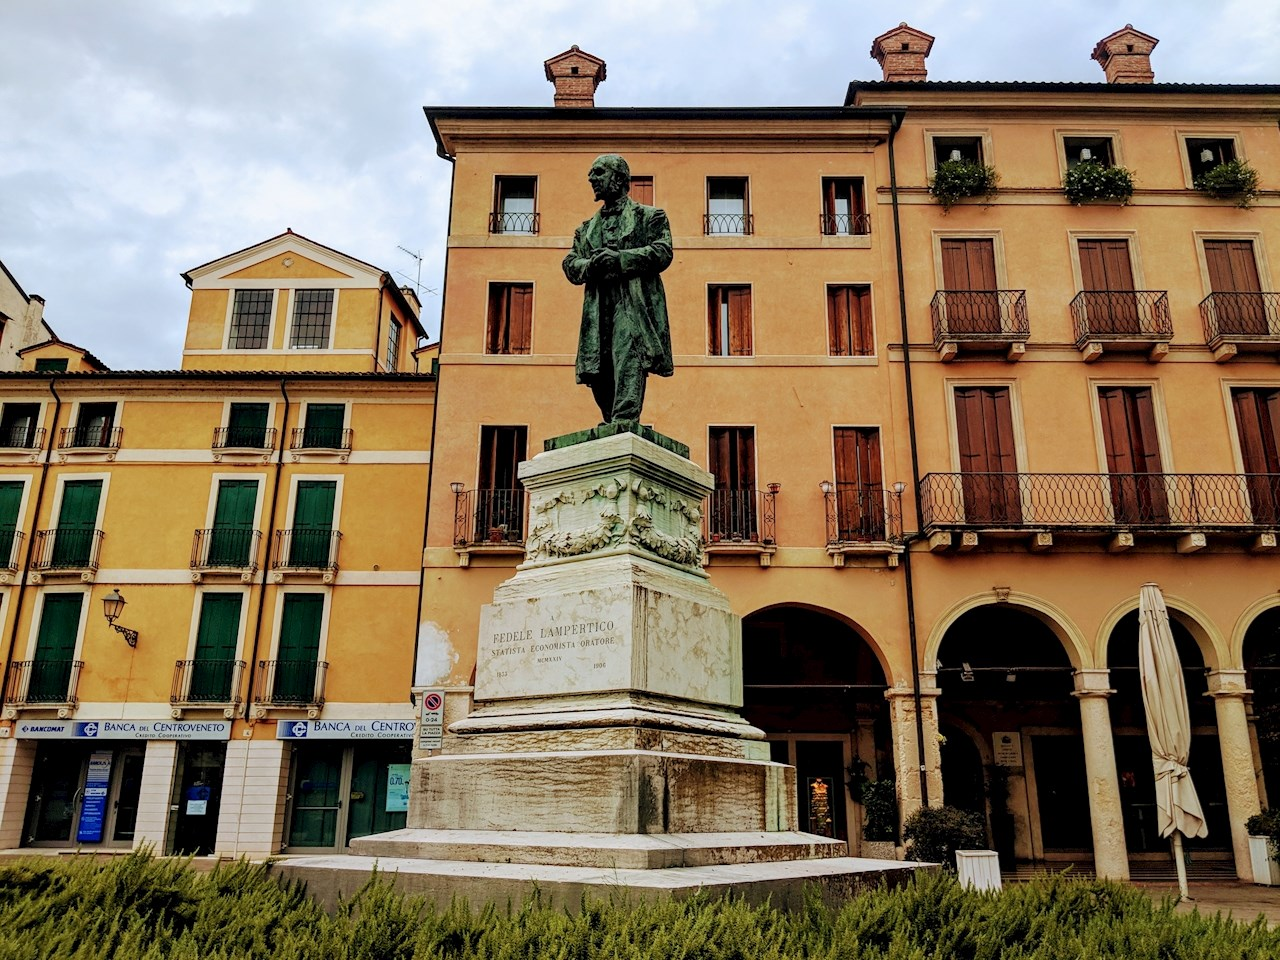 Monument with a statue of Fedele Lampertico